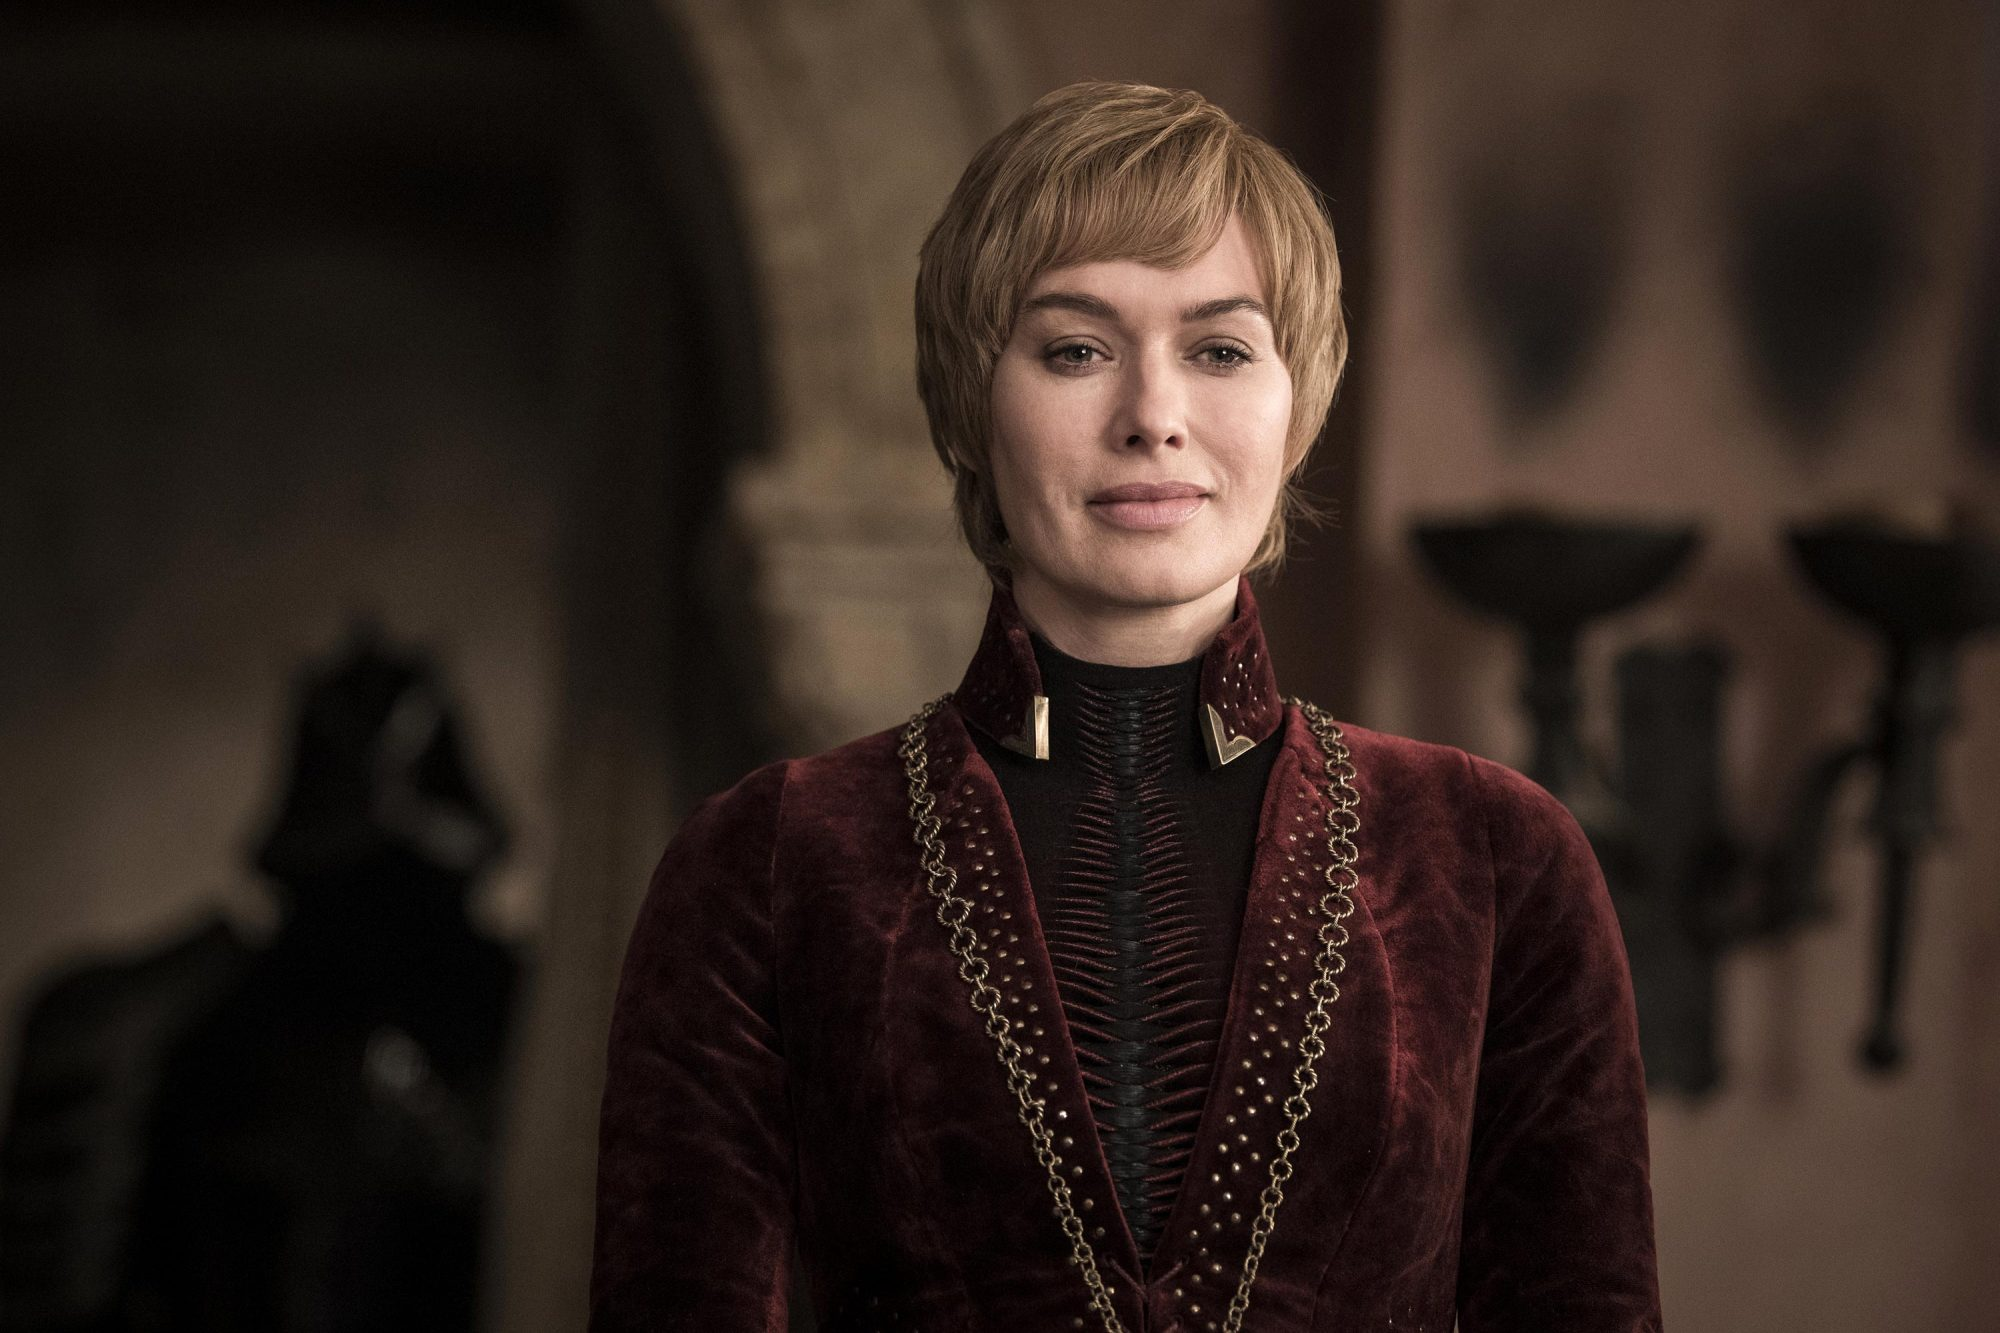 """While most actors choose a double to film nude scenes, Headey needed someone who could capture the humiliation Cersei felt in Game of Thrones' season 5 finale. """"It was a long process trying to find somebody who got what it means physically to be there with all that stuff going on, and Rebecca [Van Cleave] is a great actress,"""" Headey told EW about working with her body double to capture the emotional heft of the scene."""